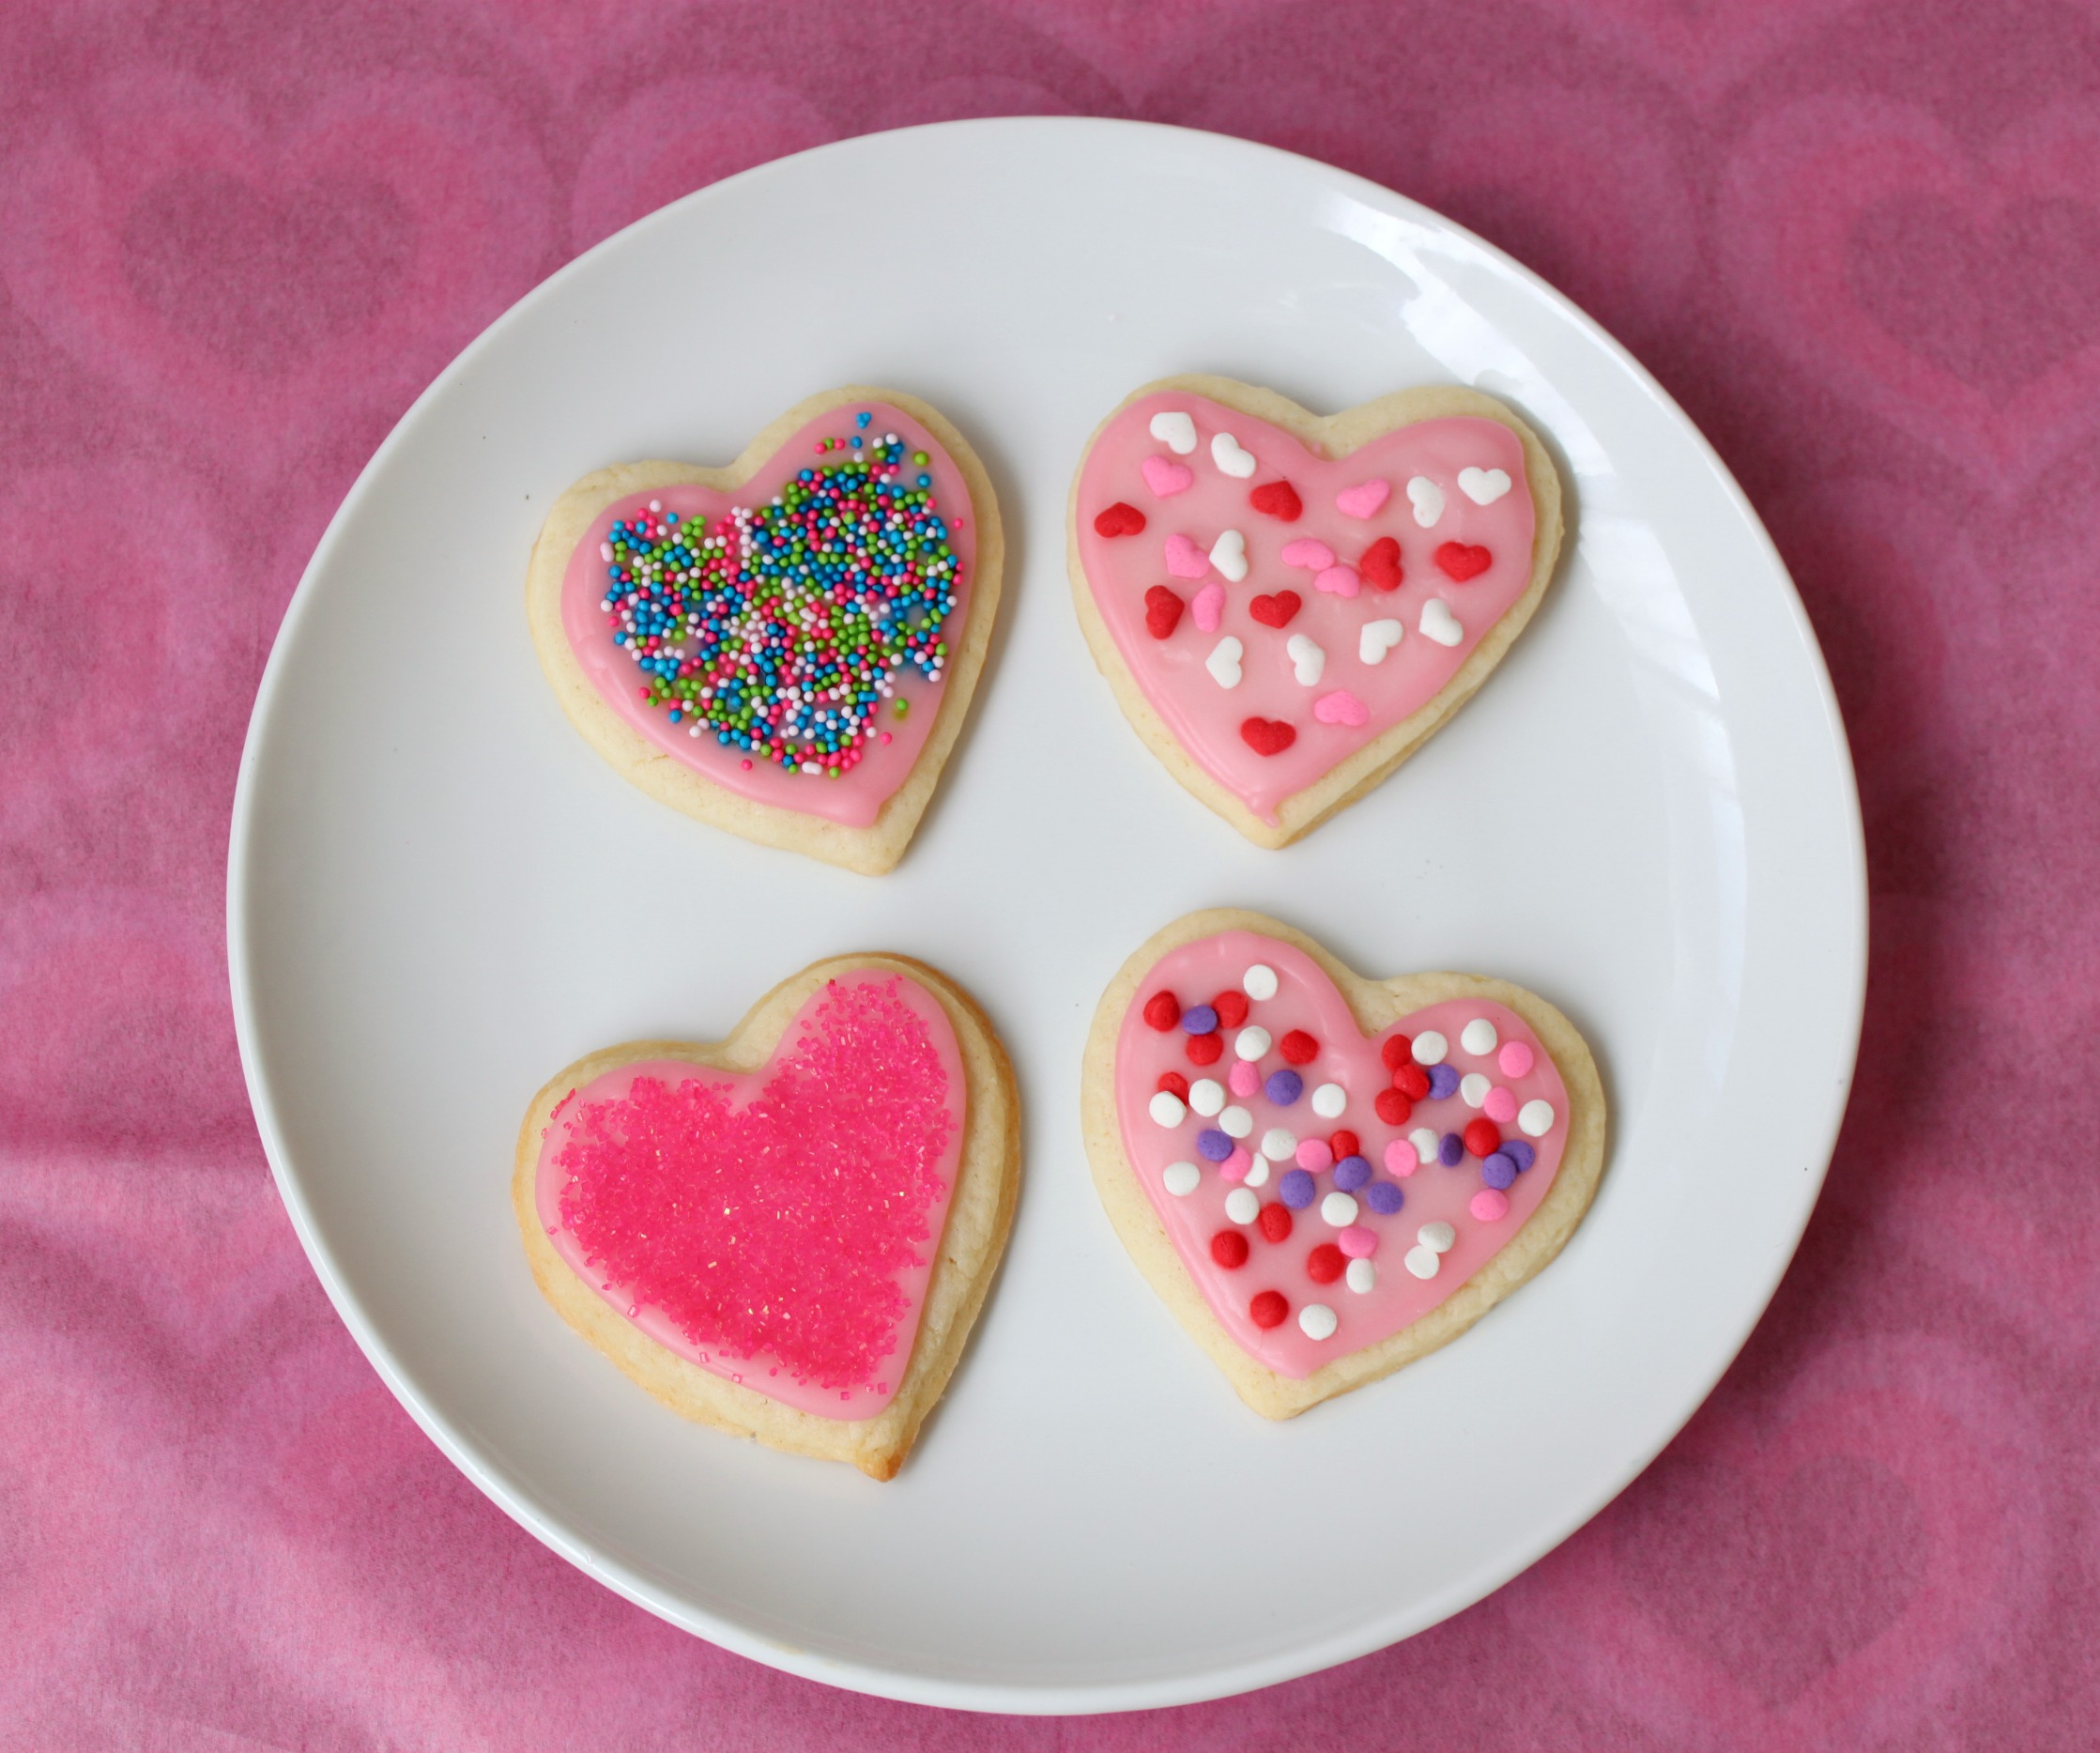 Heart sugar cookies with different sprinkles